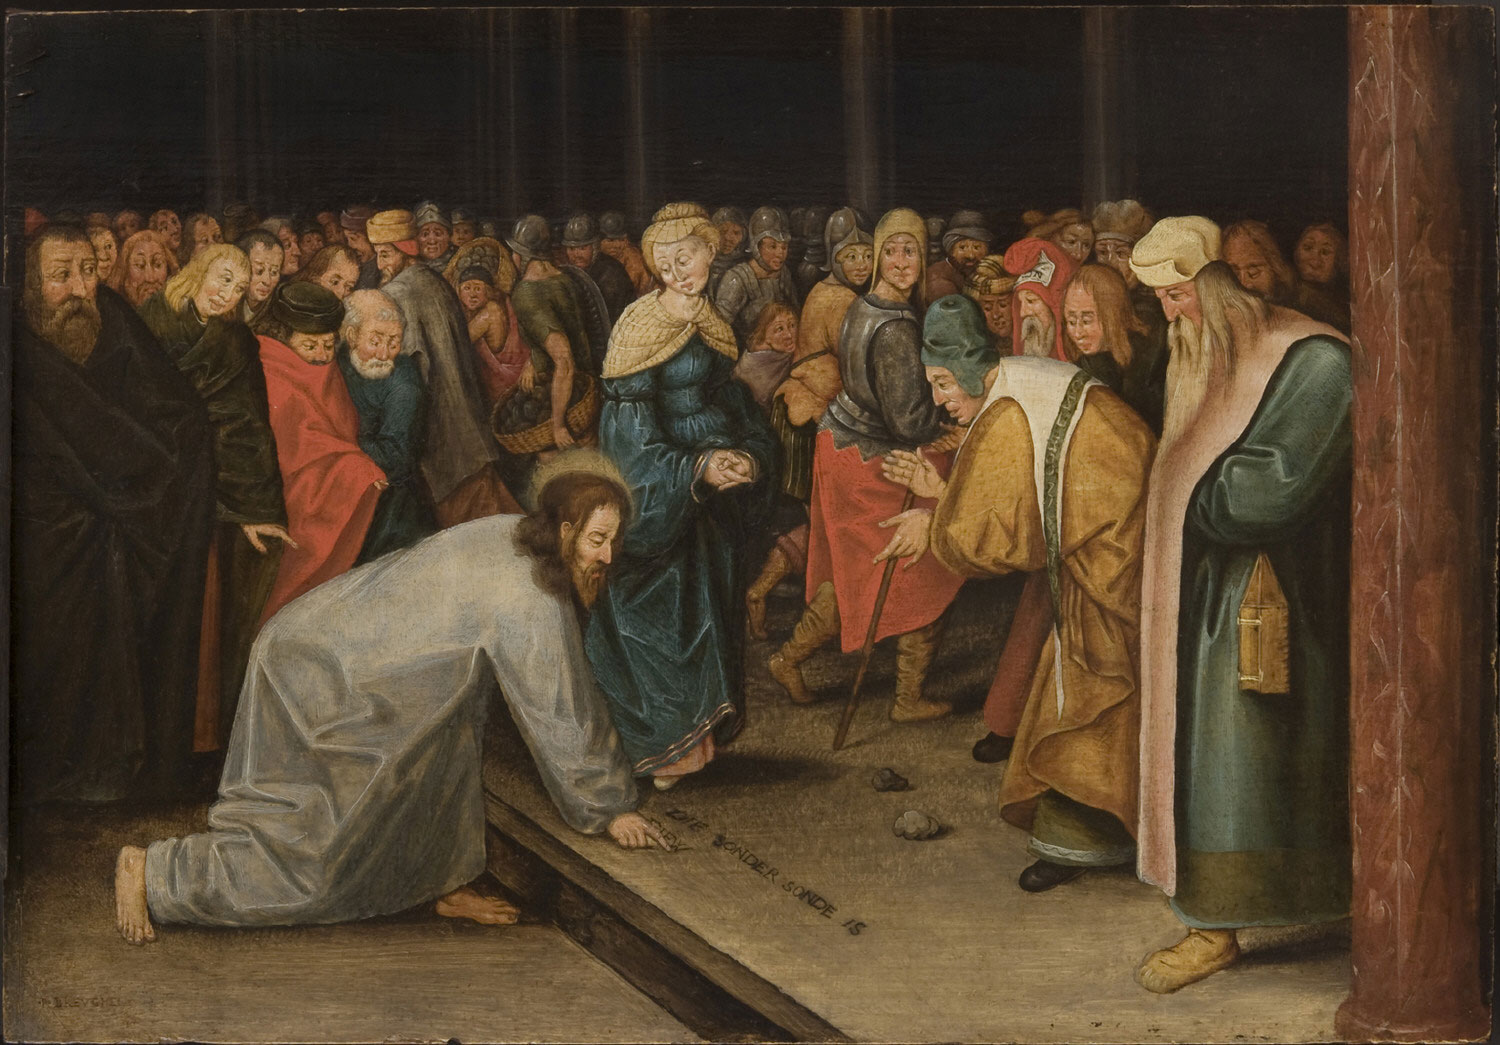 brueghel_ii2c_pieter_-_christ_and_the_woman_taken_in_adultery_1600